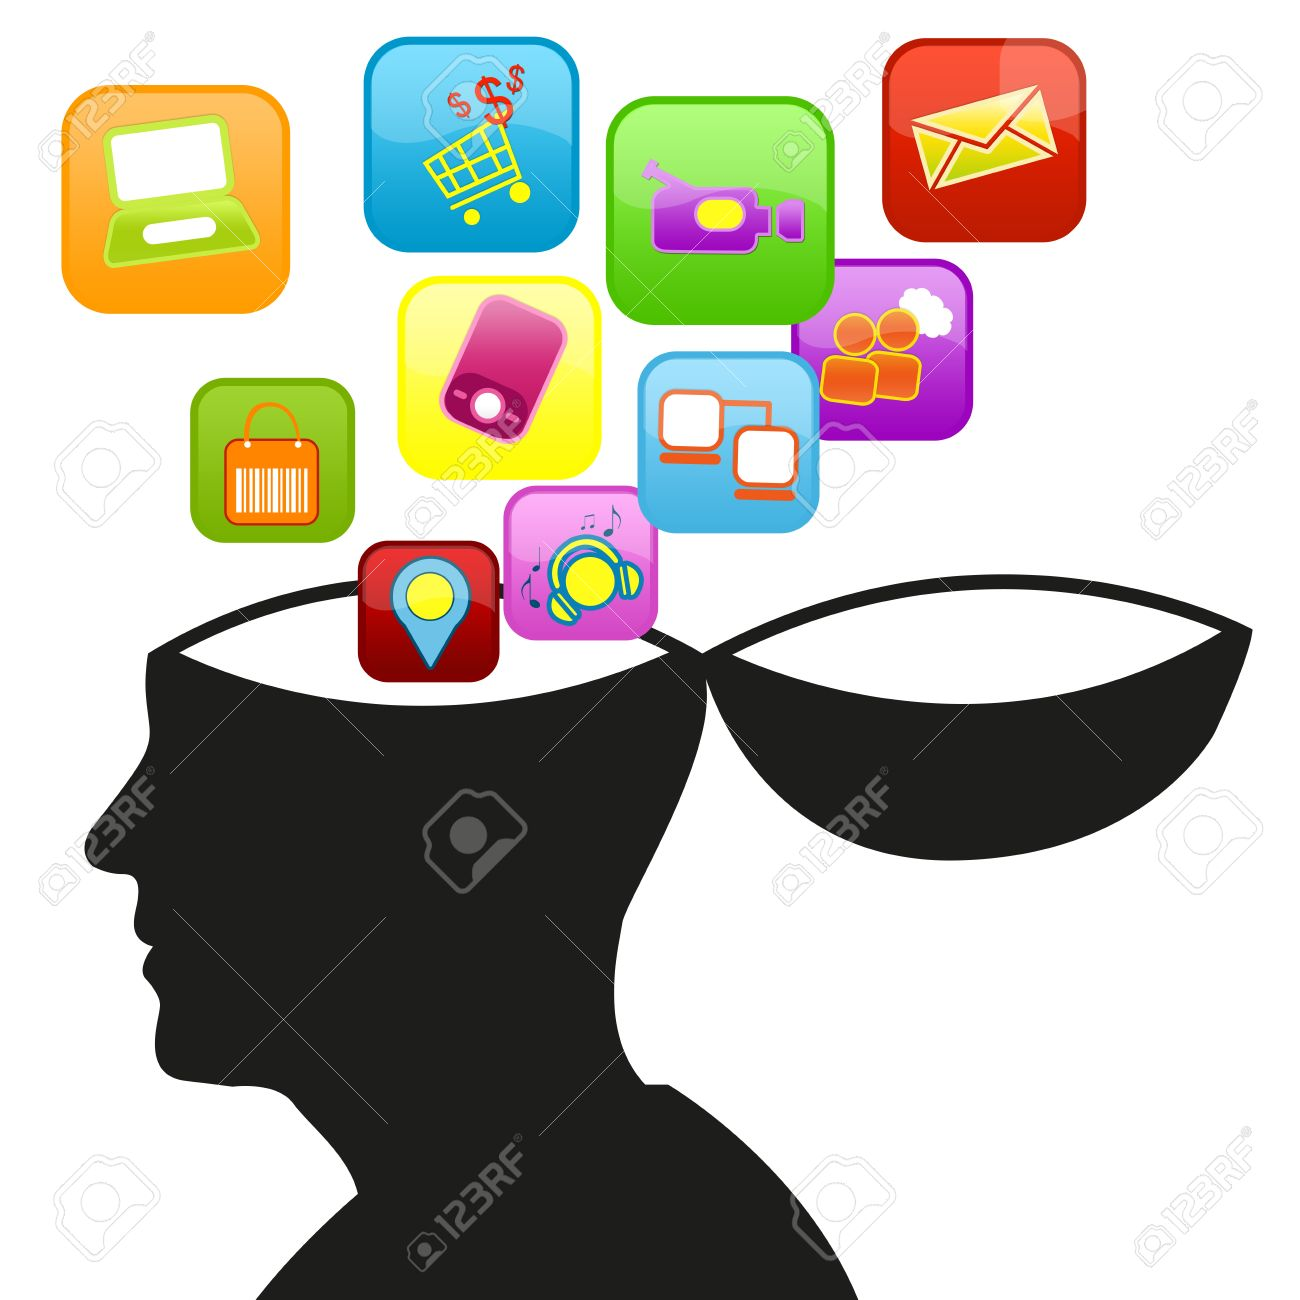 Social Media Concept Present With Open Head and Group of Social Media Icon Isolate on White Background Stock Photo - 17404186